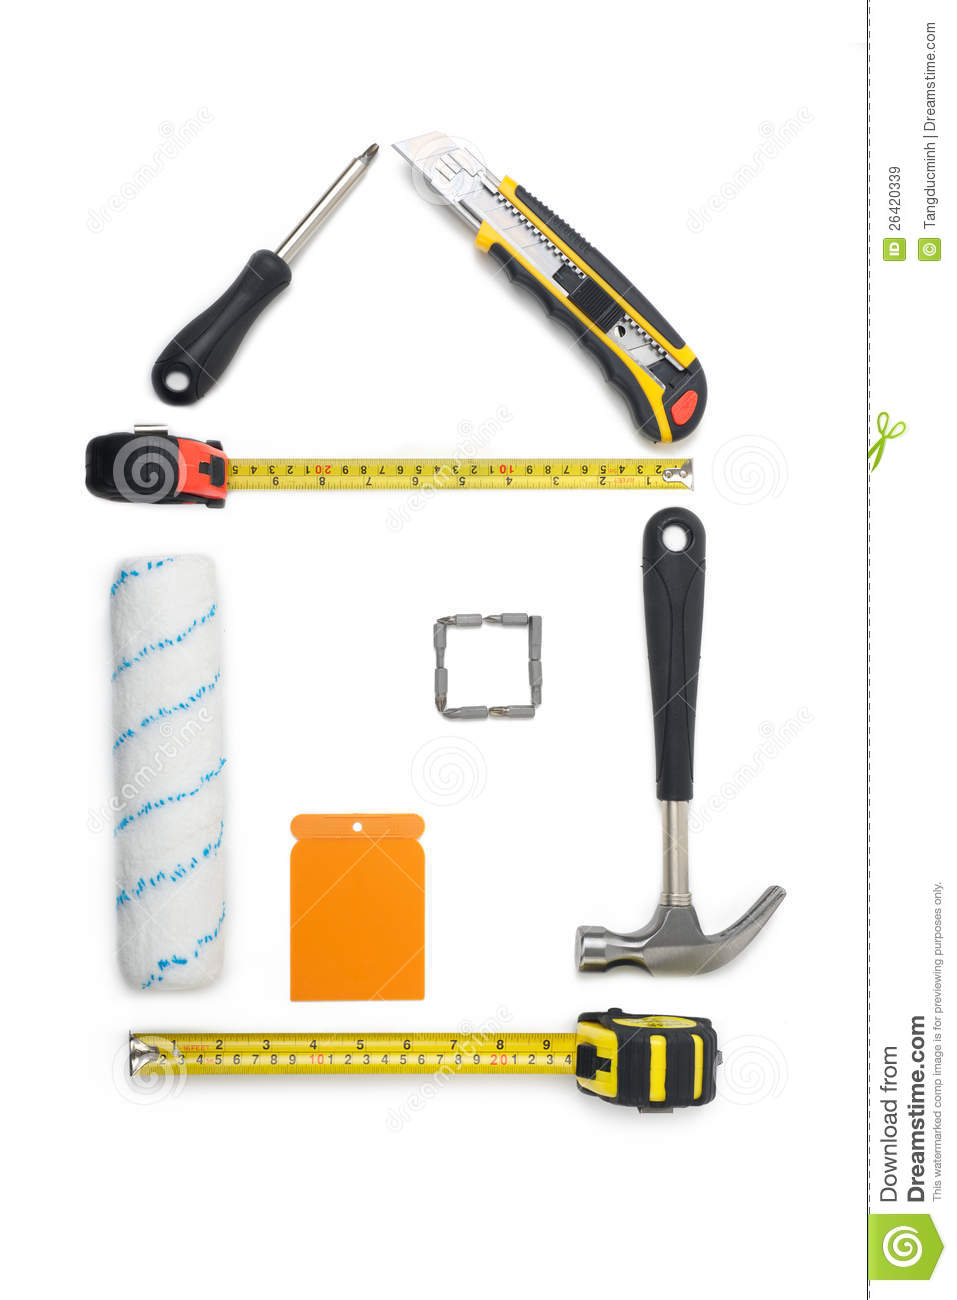 House tools royalty free stock images image 26420339 Tools to build a house